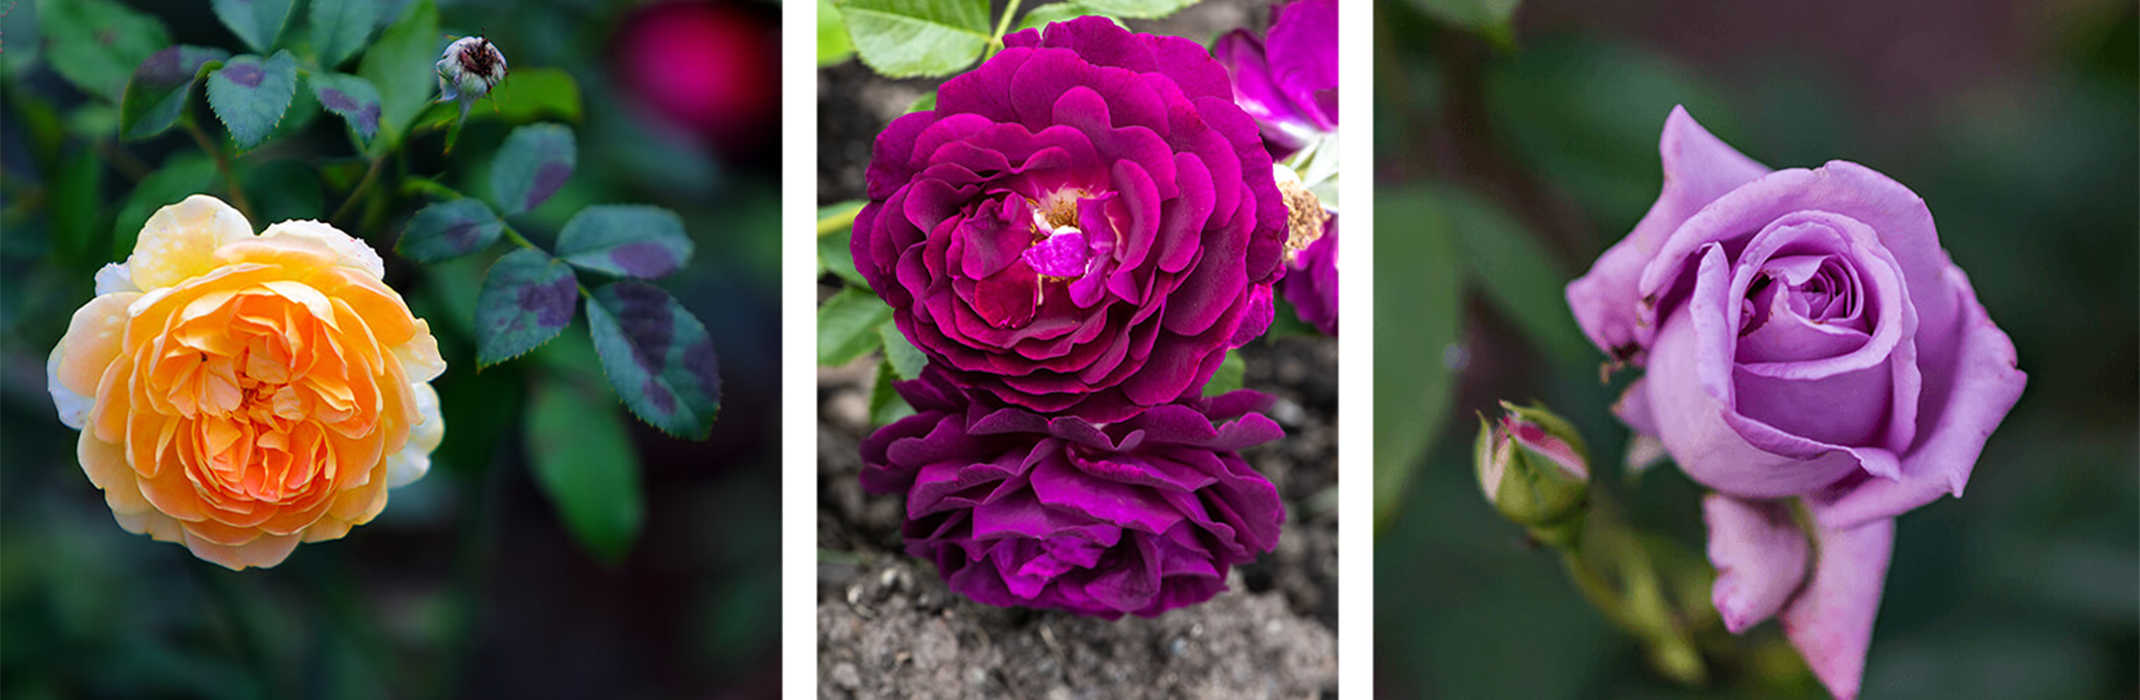 3 images: a closeup of a yellow rose in the garden; 2 pinkish purple roses in the garden; and a closeup of a lavender rose in the garden